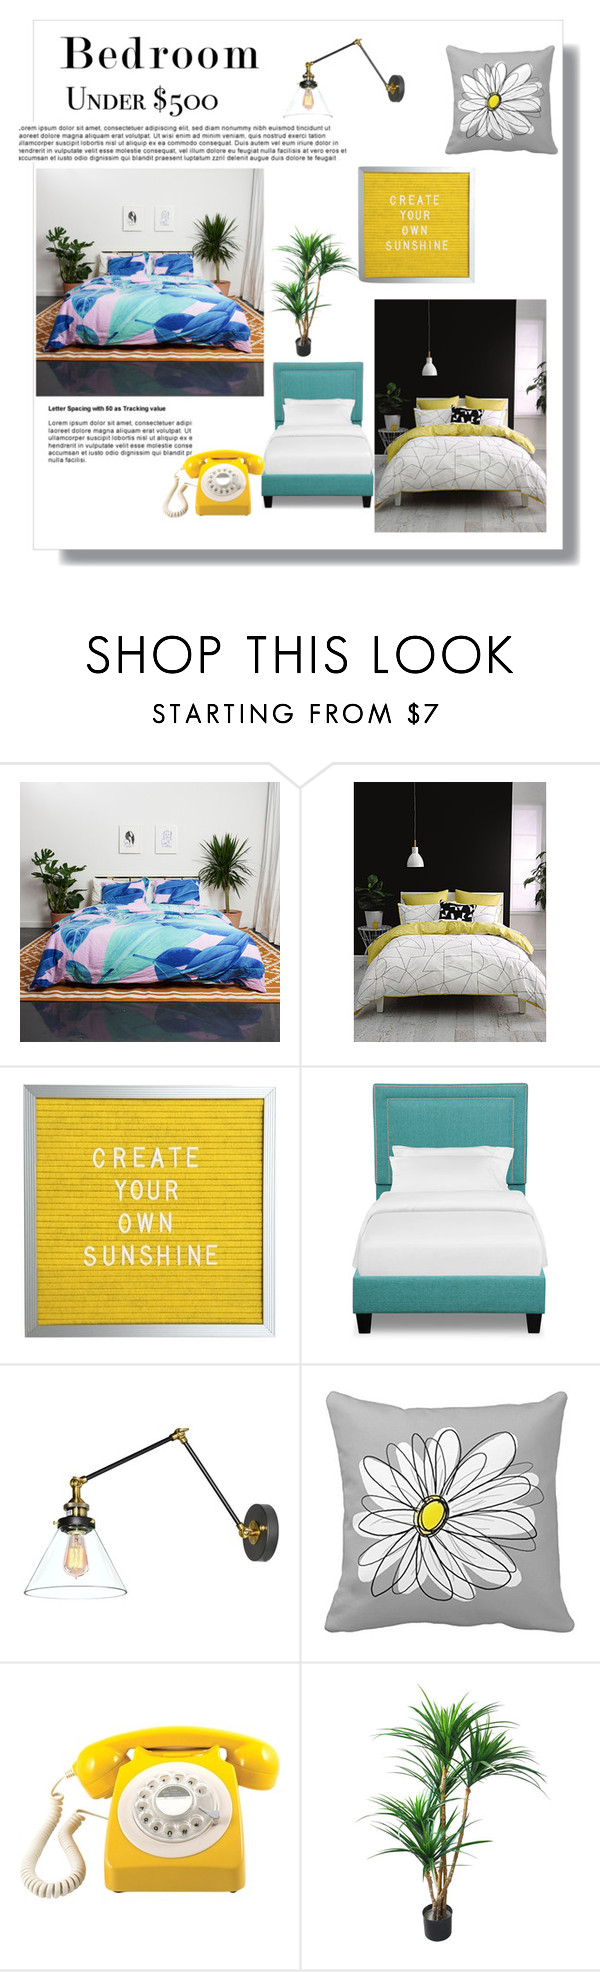 """Bedroom"" by fourmouziliana ❤ liked on Polyvore featuring interior, interiors, interior design, home, home decor, interior decorating, Linen House, GPO, bedroom and bedroomunder500"